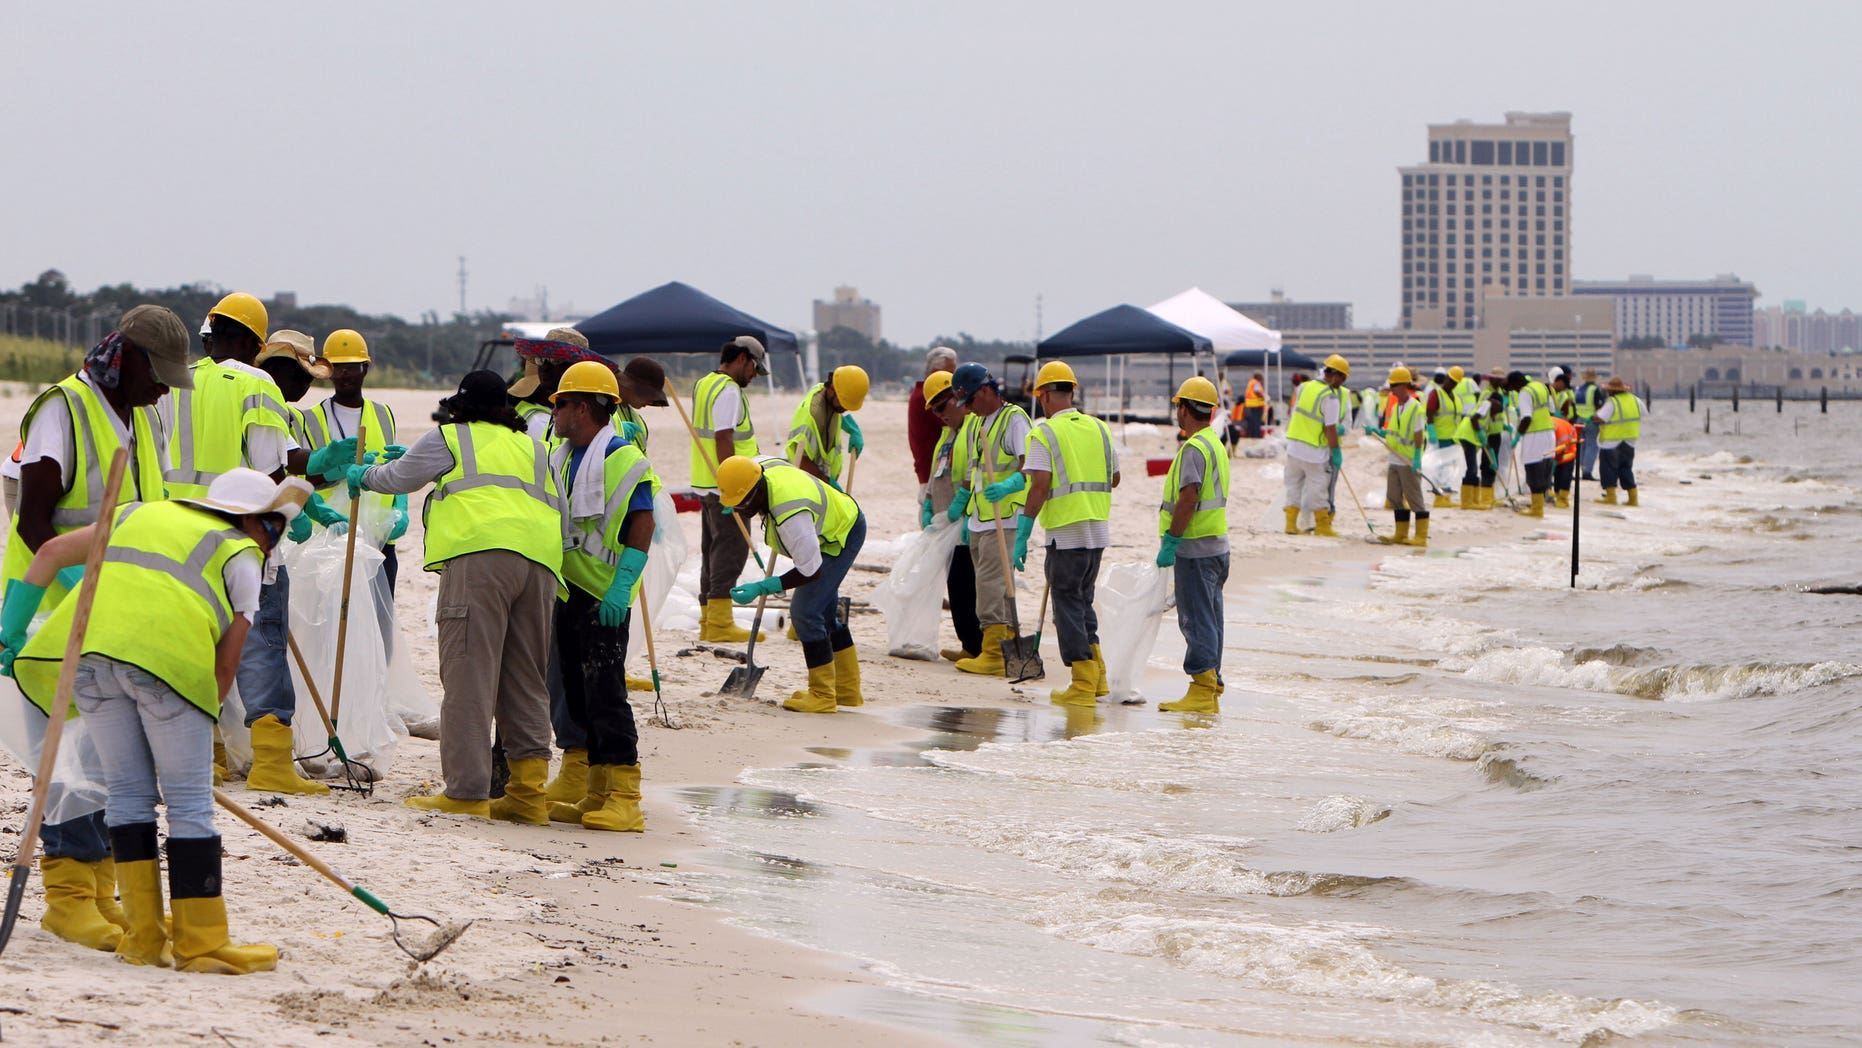 June 28: About three hundred BP contract workers tend to the beaches in Biloxi, Miss., to remove tar balls that had washed ashore over the weekend. (AP)